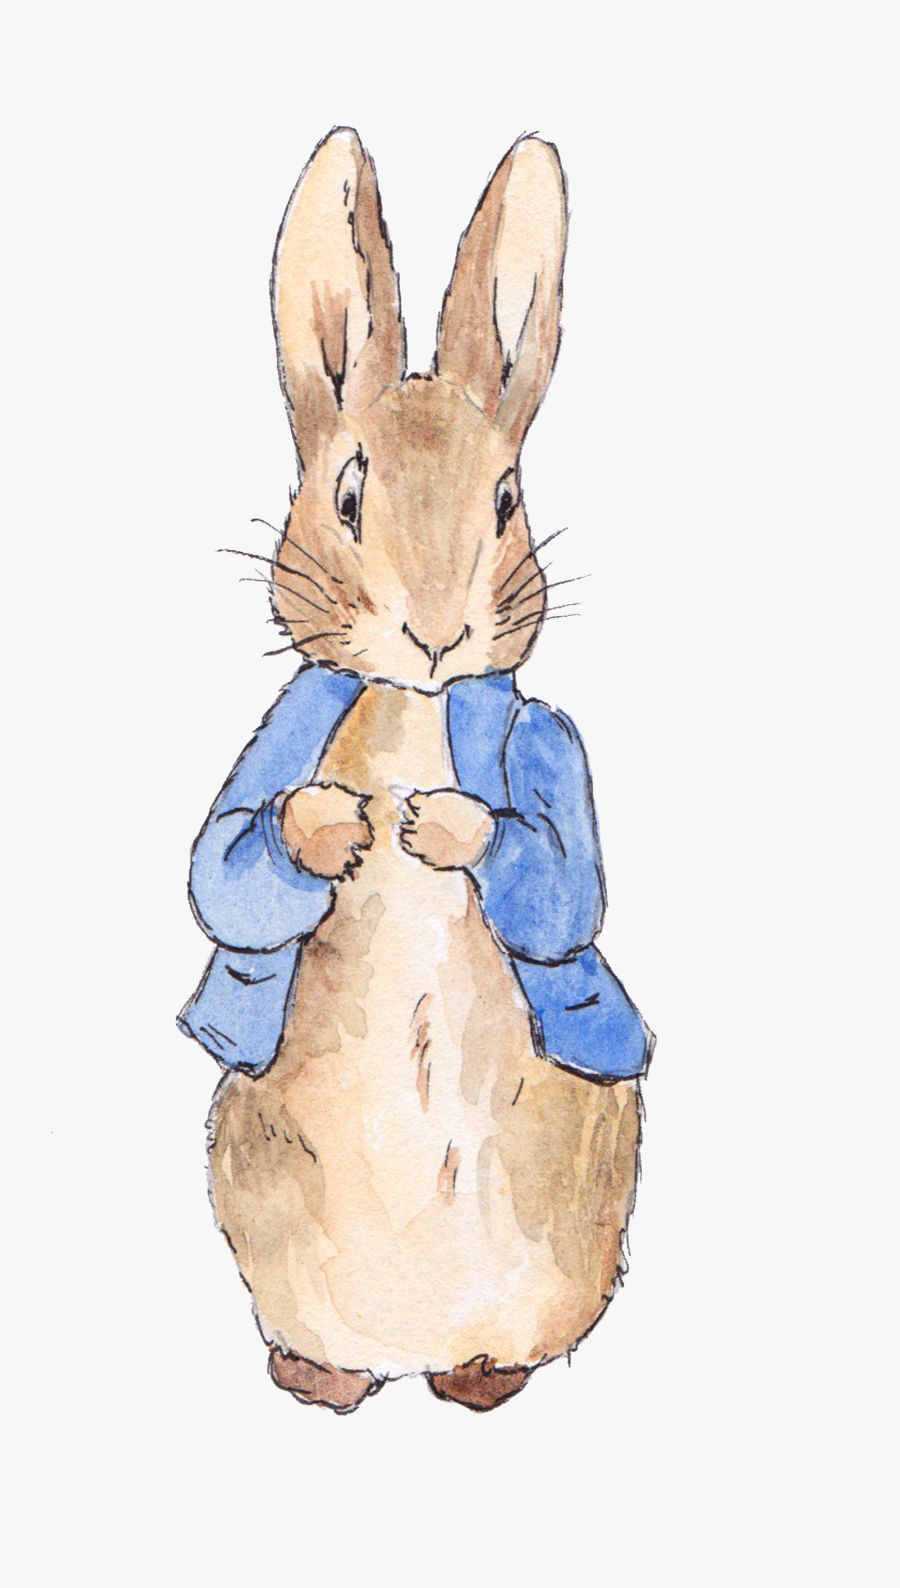 Transparent Peter Rabbit Clipart - Even The Smallest One Can Change The World Peter Rabbit, Transparent Clipart